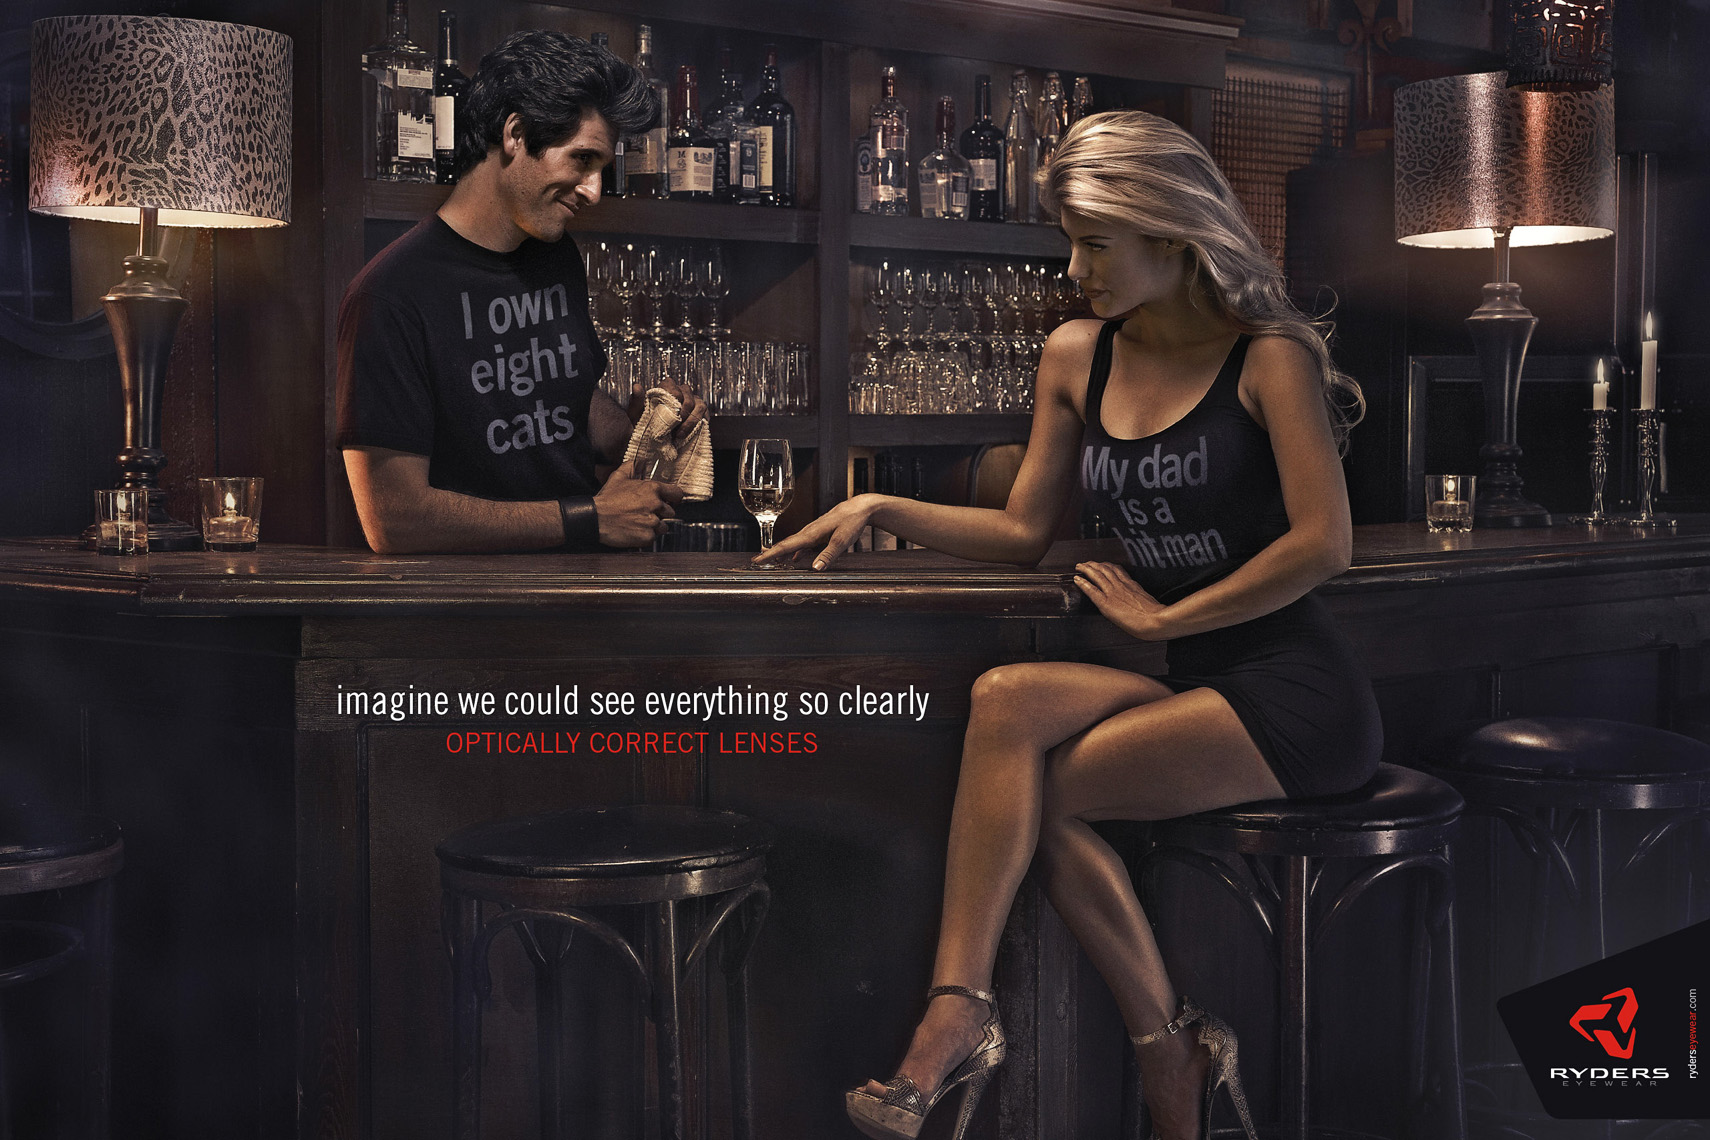 ryders eyewear bartender chats with attractive blonde at the bar